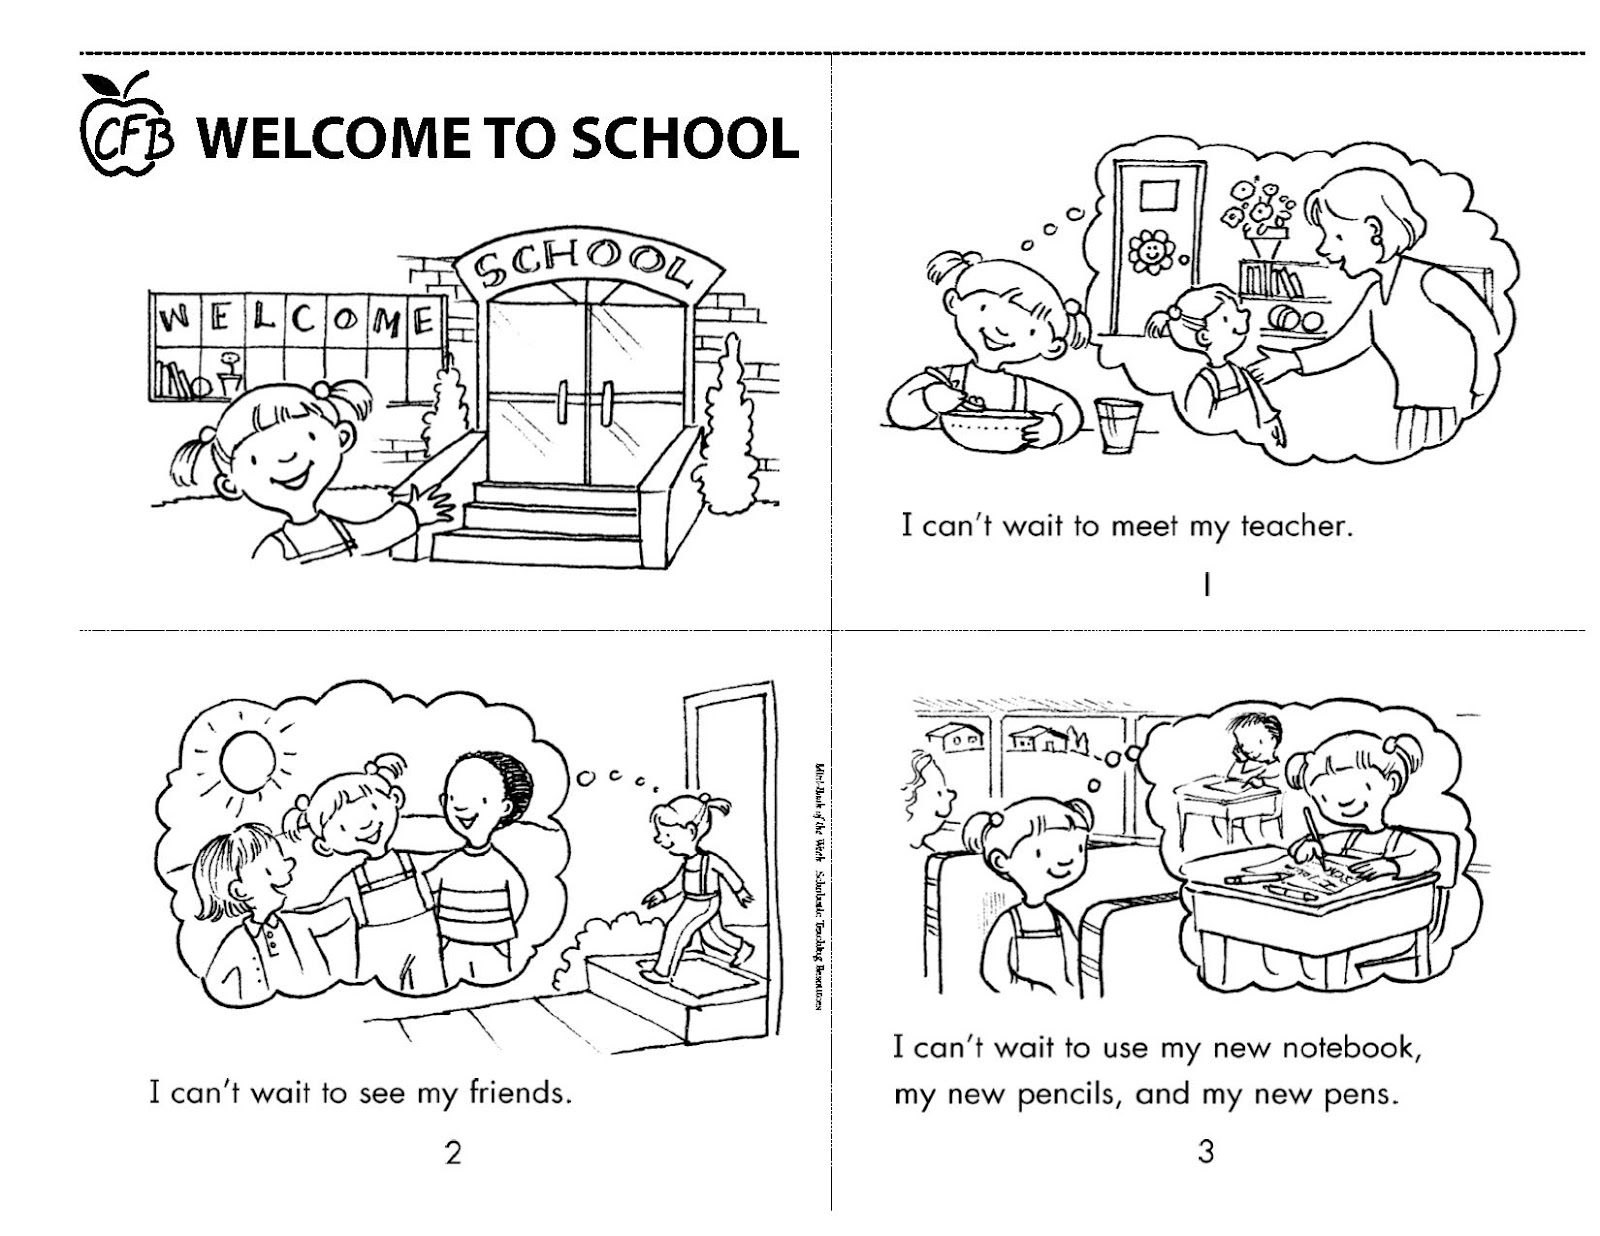 Future C-FB: Parenting Young Children: Welcome to School